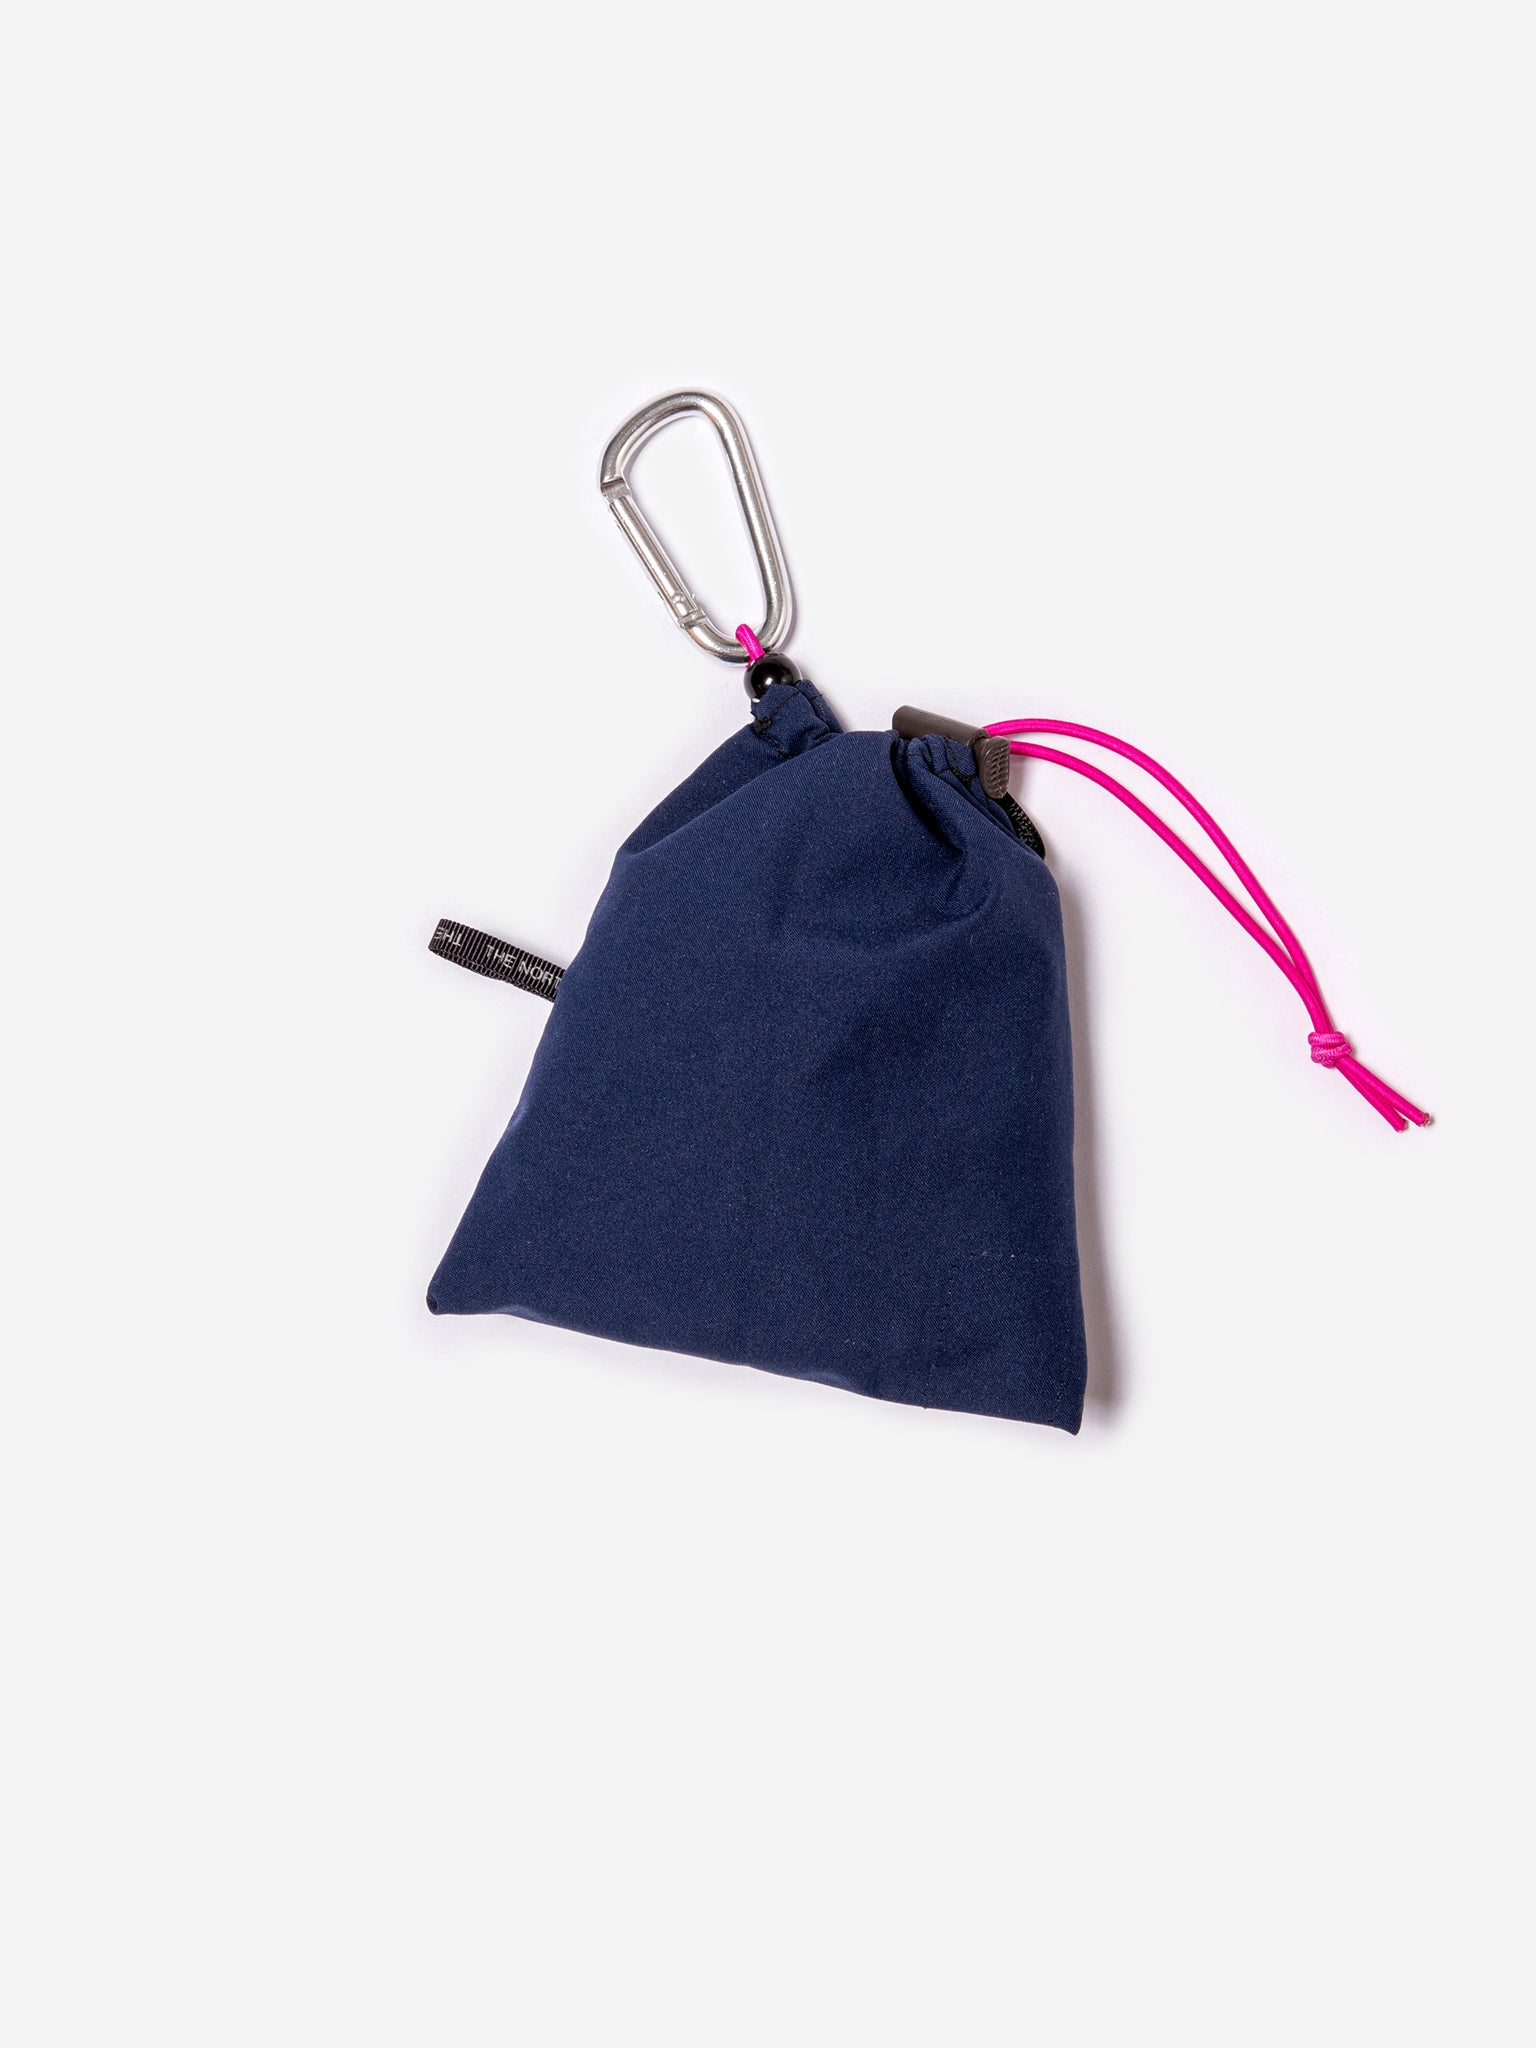 THE OFFCUTS DRAWSTRING POUCH 011